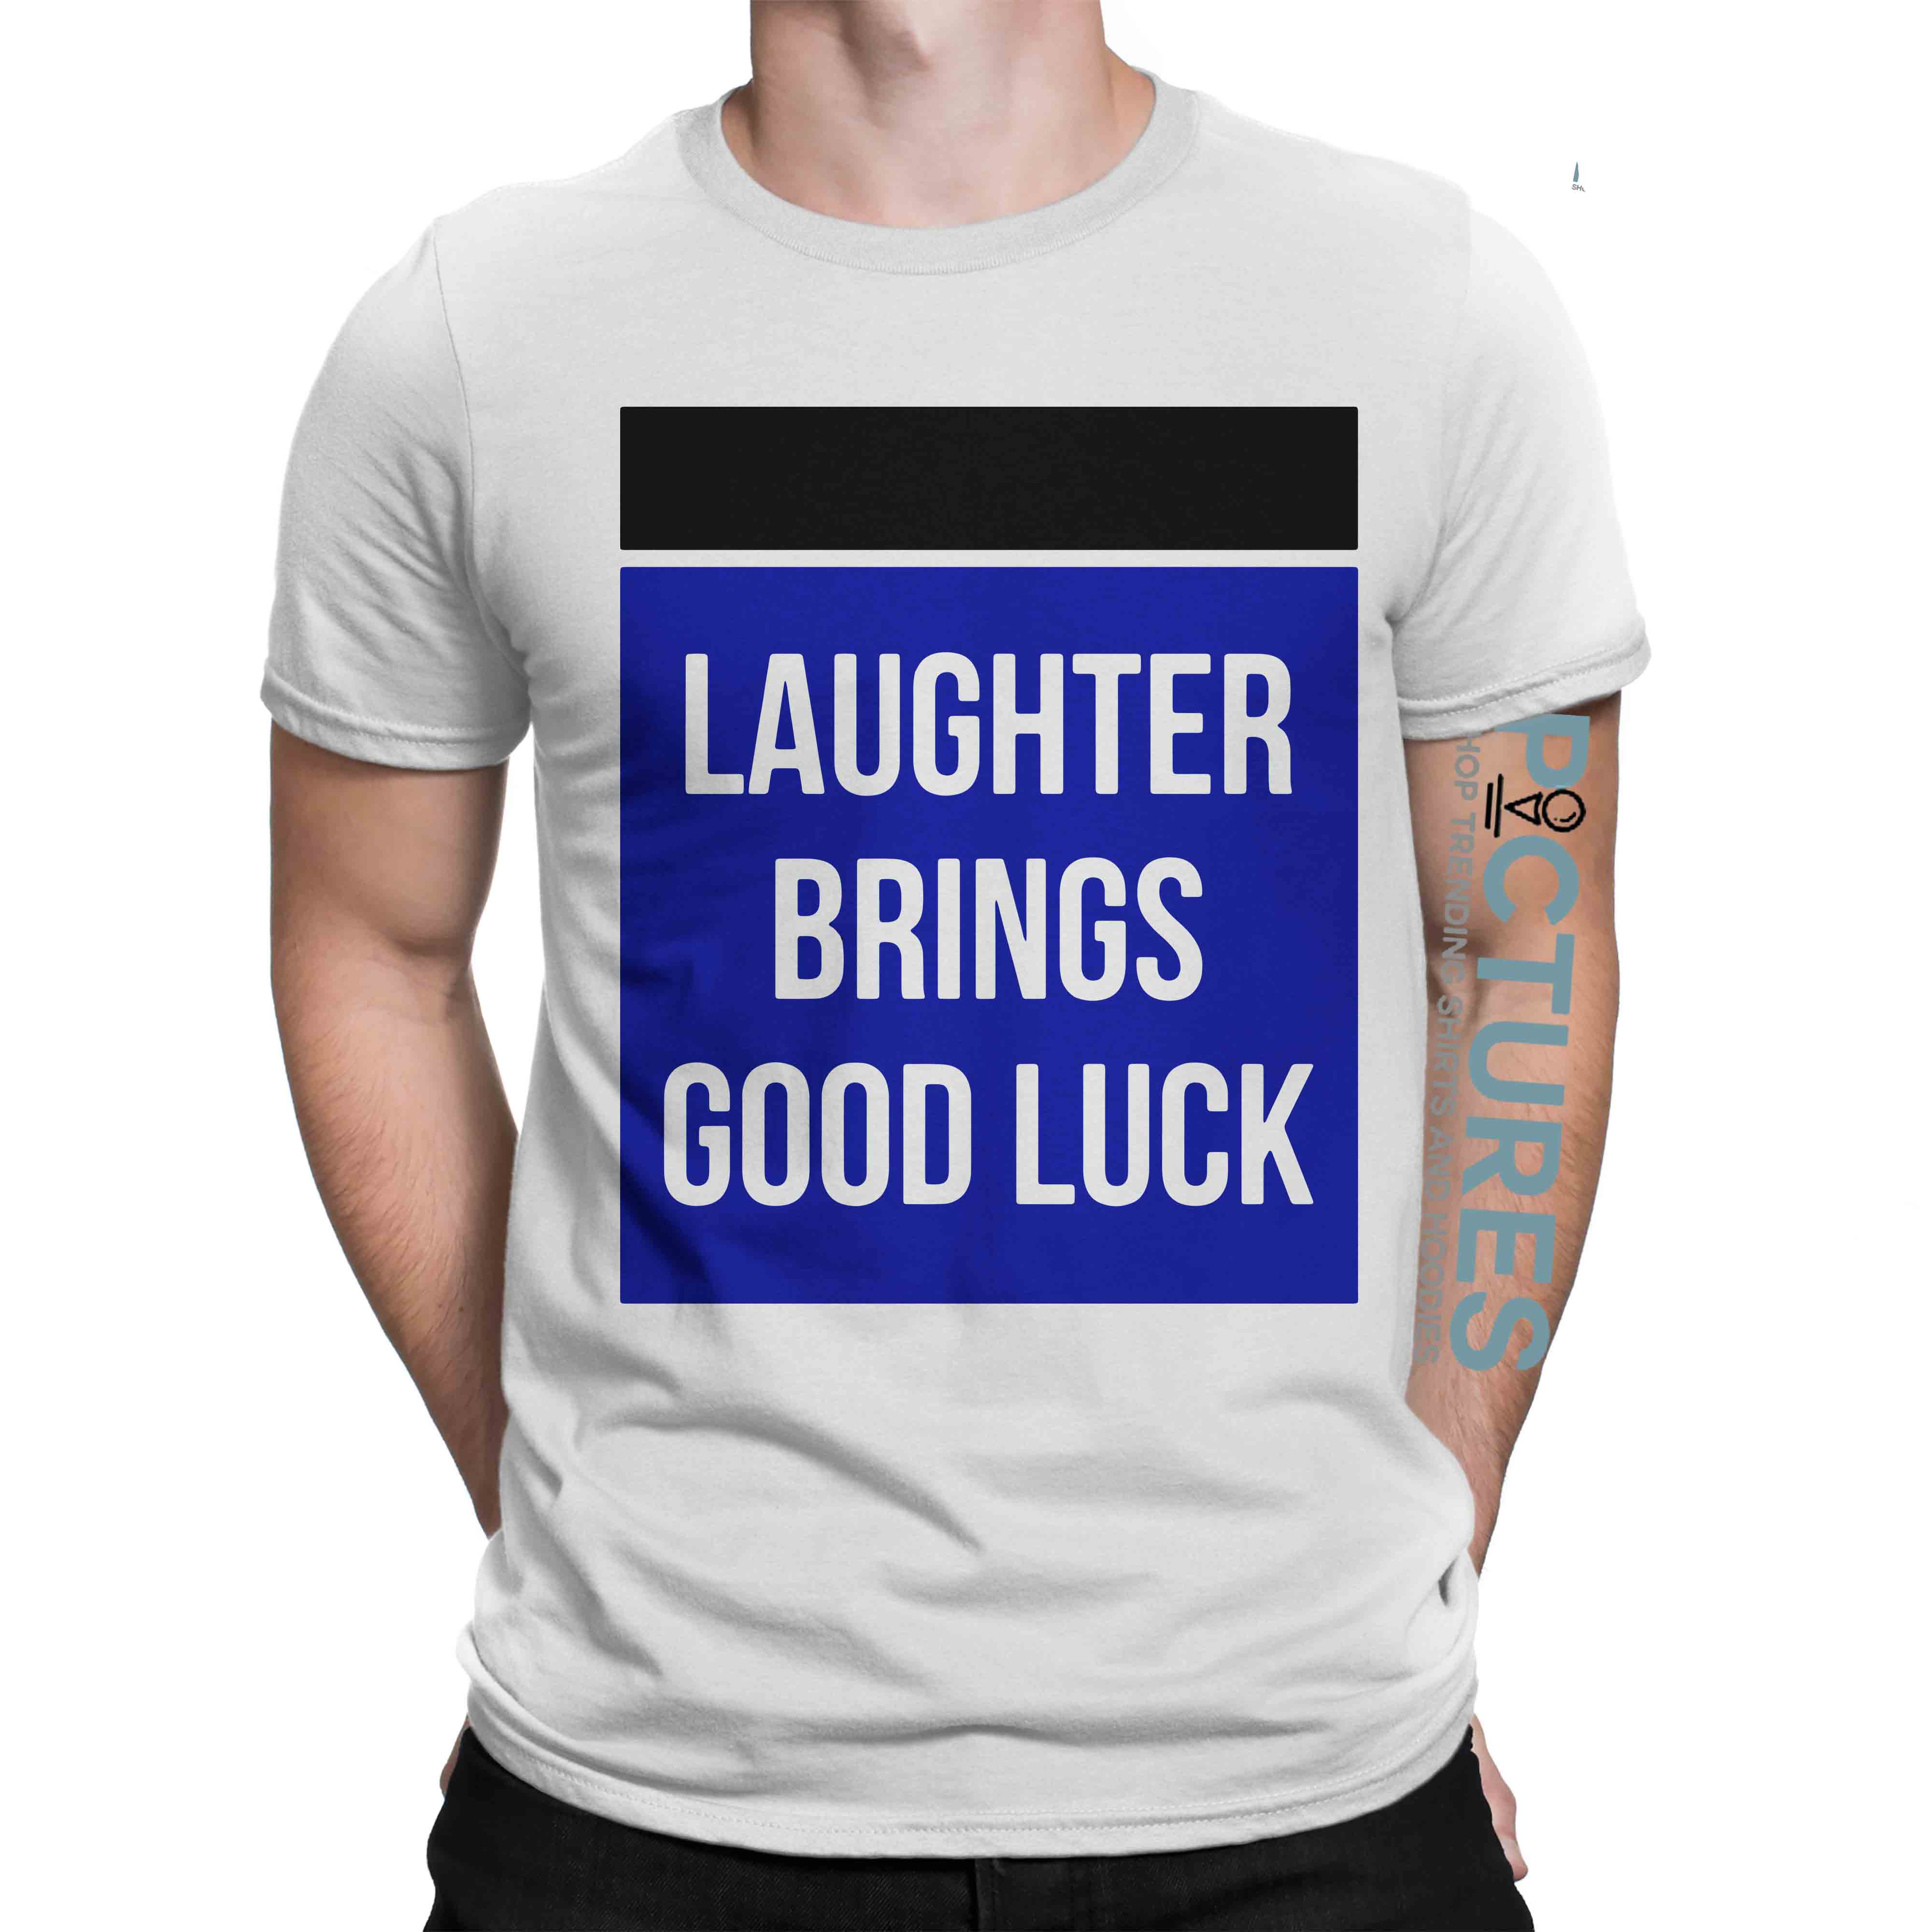 Laughter Brings Good Luck shirt